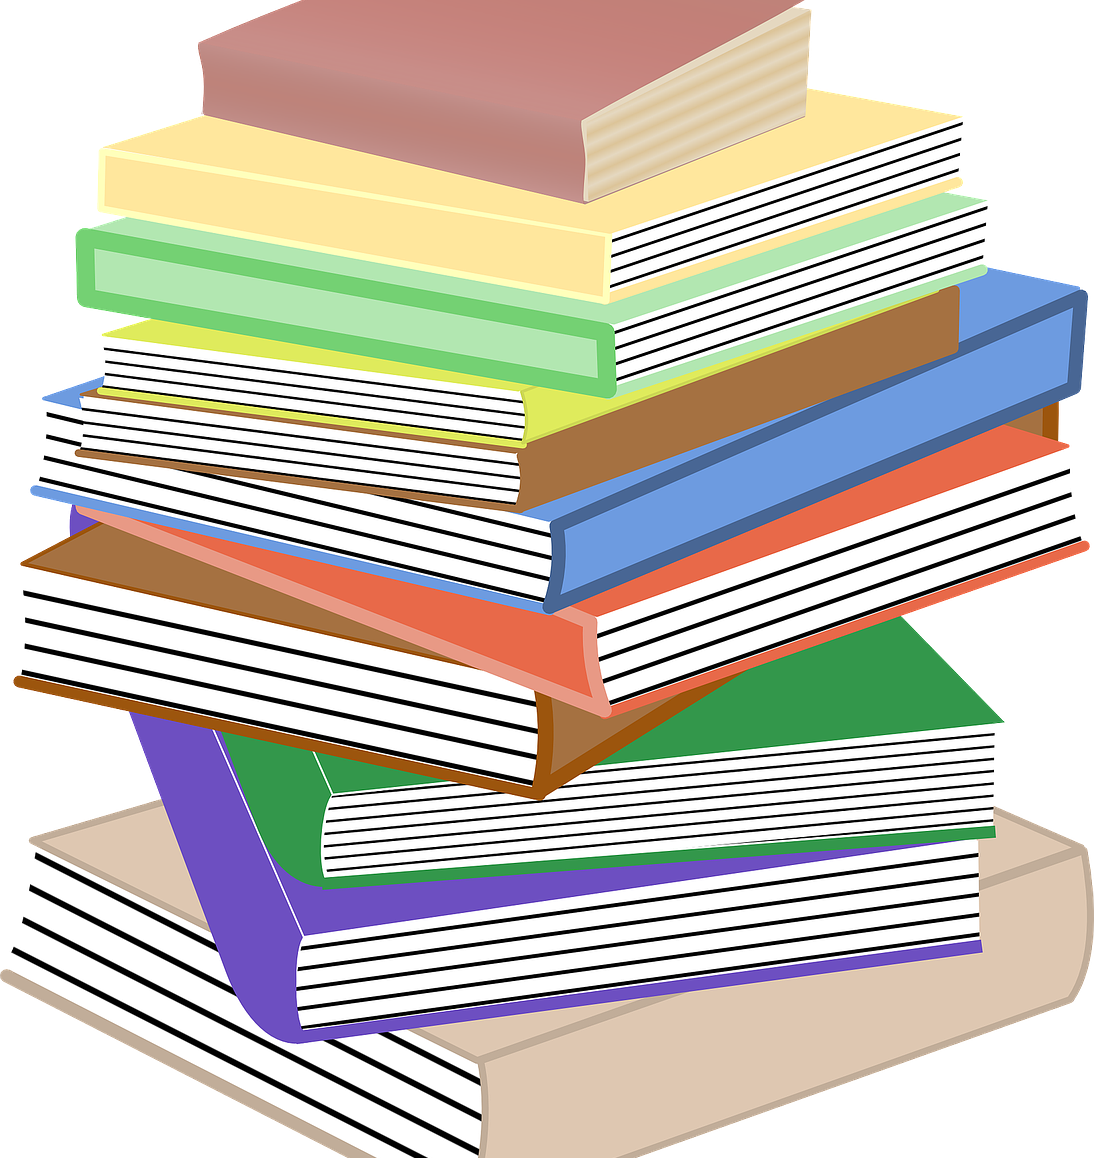 books-25159_1280.png